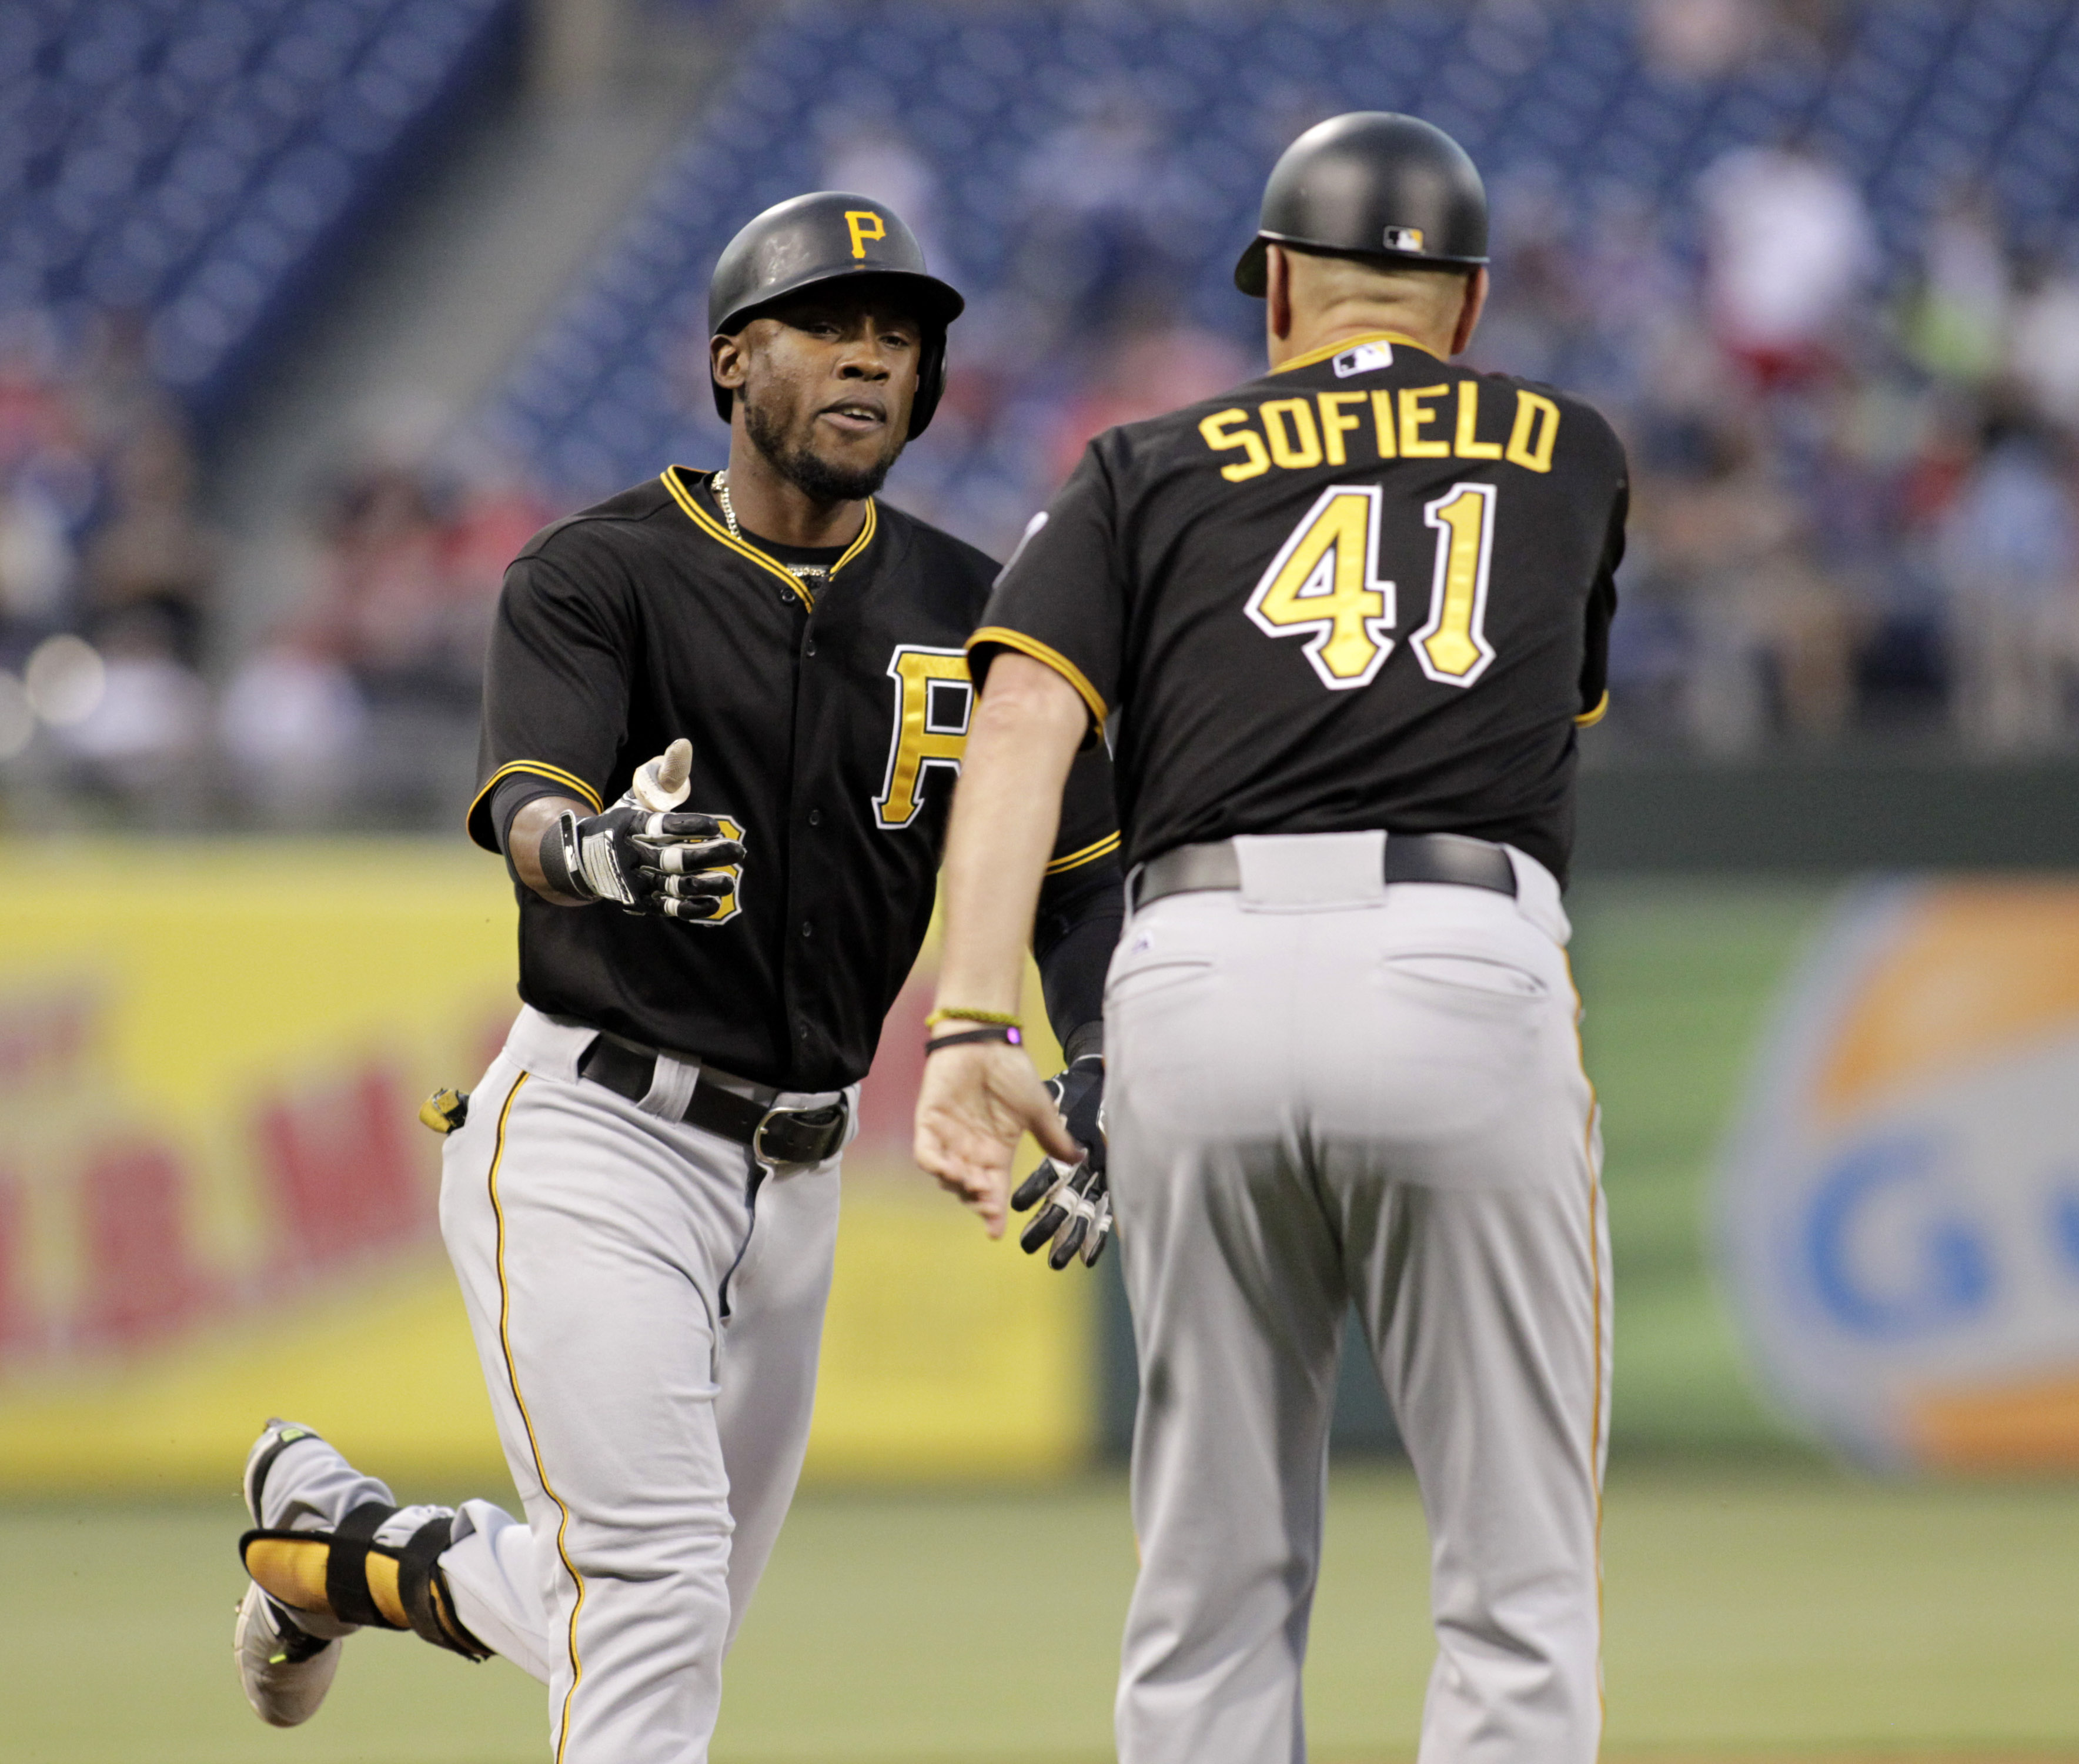 Pittsburgh Pirates' Starling Marte ,left celebrates with third base coach Rick Sofield after hitting a three run home run against the  Philadelphia Philles in the third inning of a baseball game, Monday, May 11, 2015 in Philadelphia. (AP Photo/H. Rumph Jr